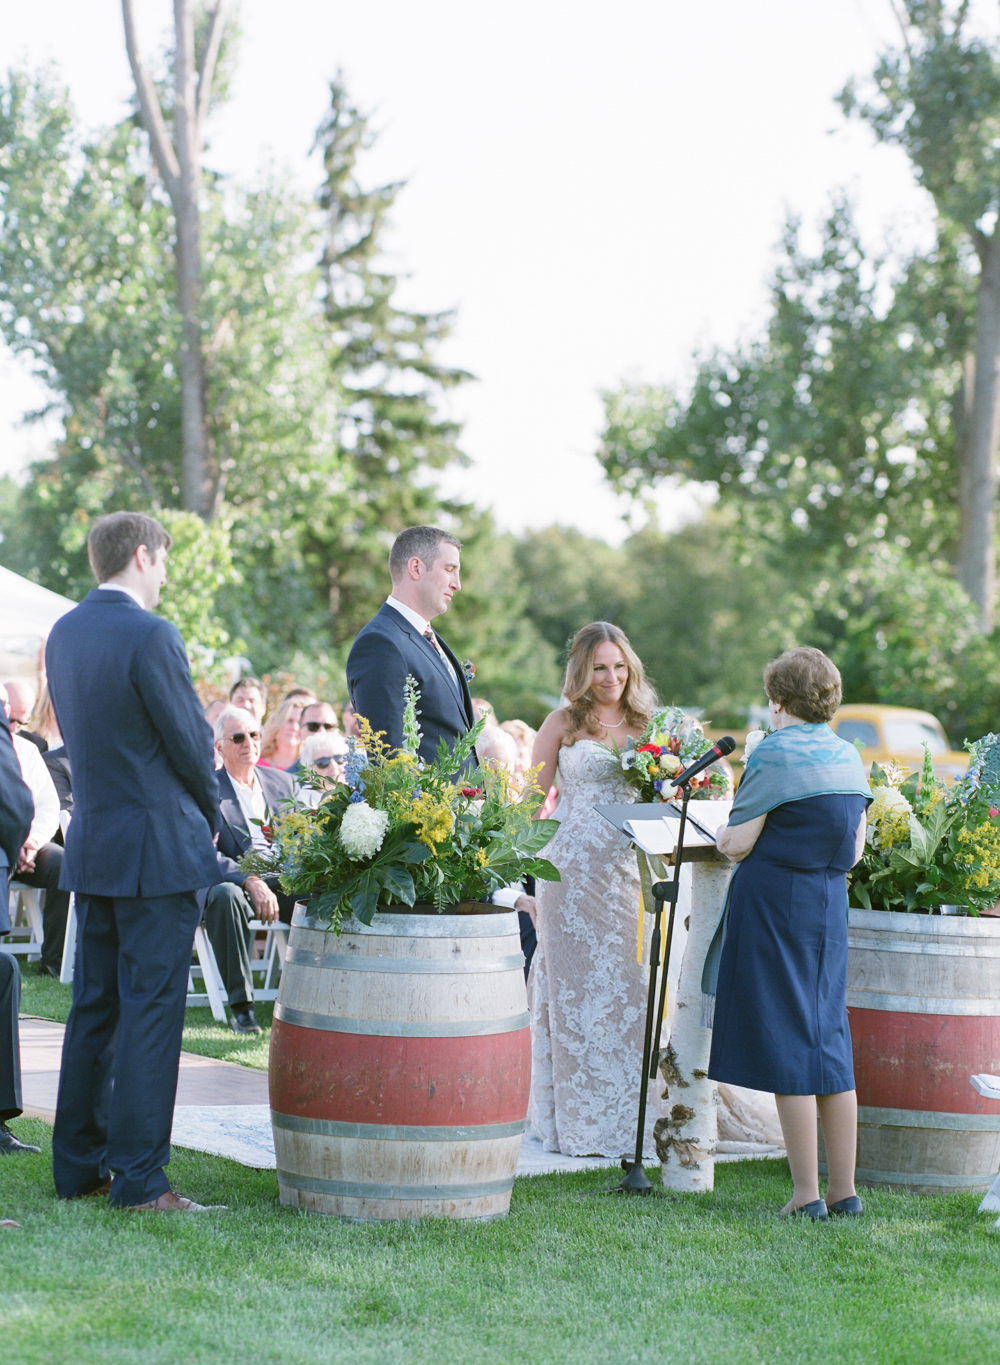 Door county weddings at Horseshoe Bay Beach Club with The McCartneys Photography